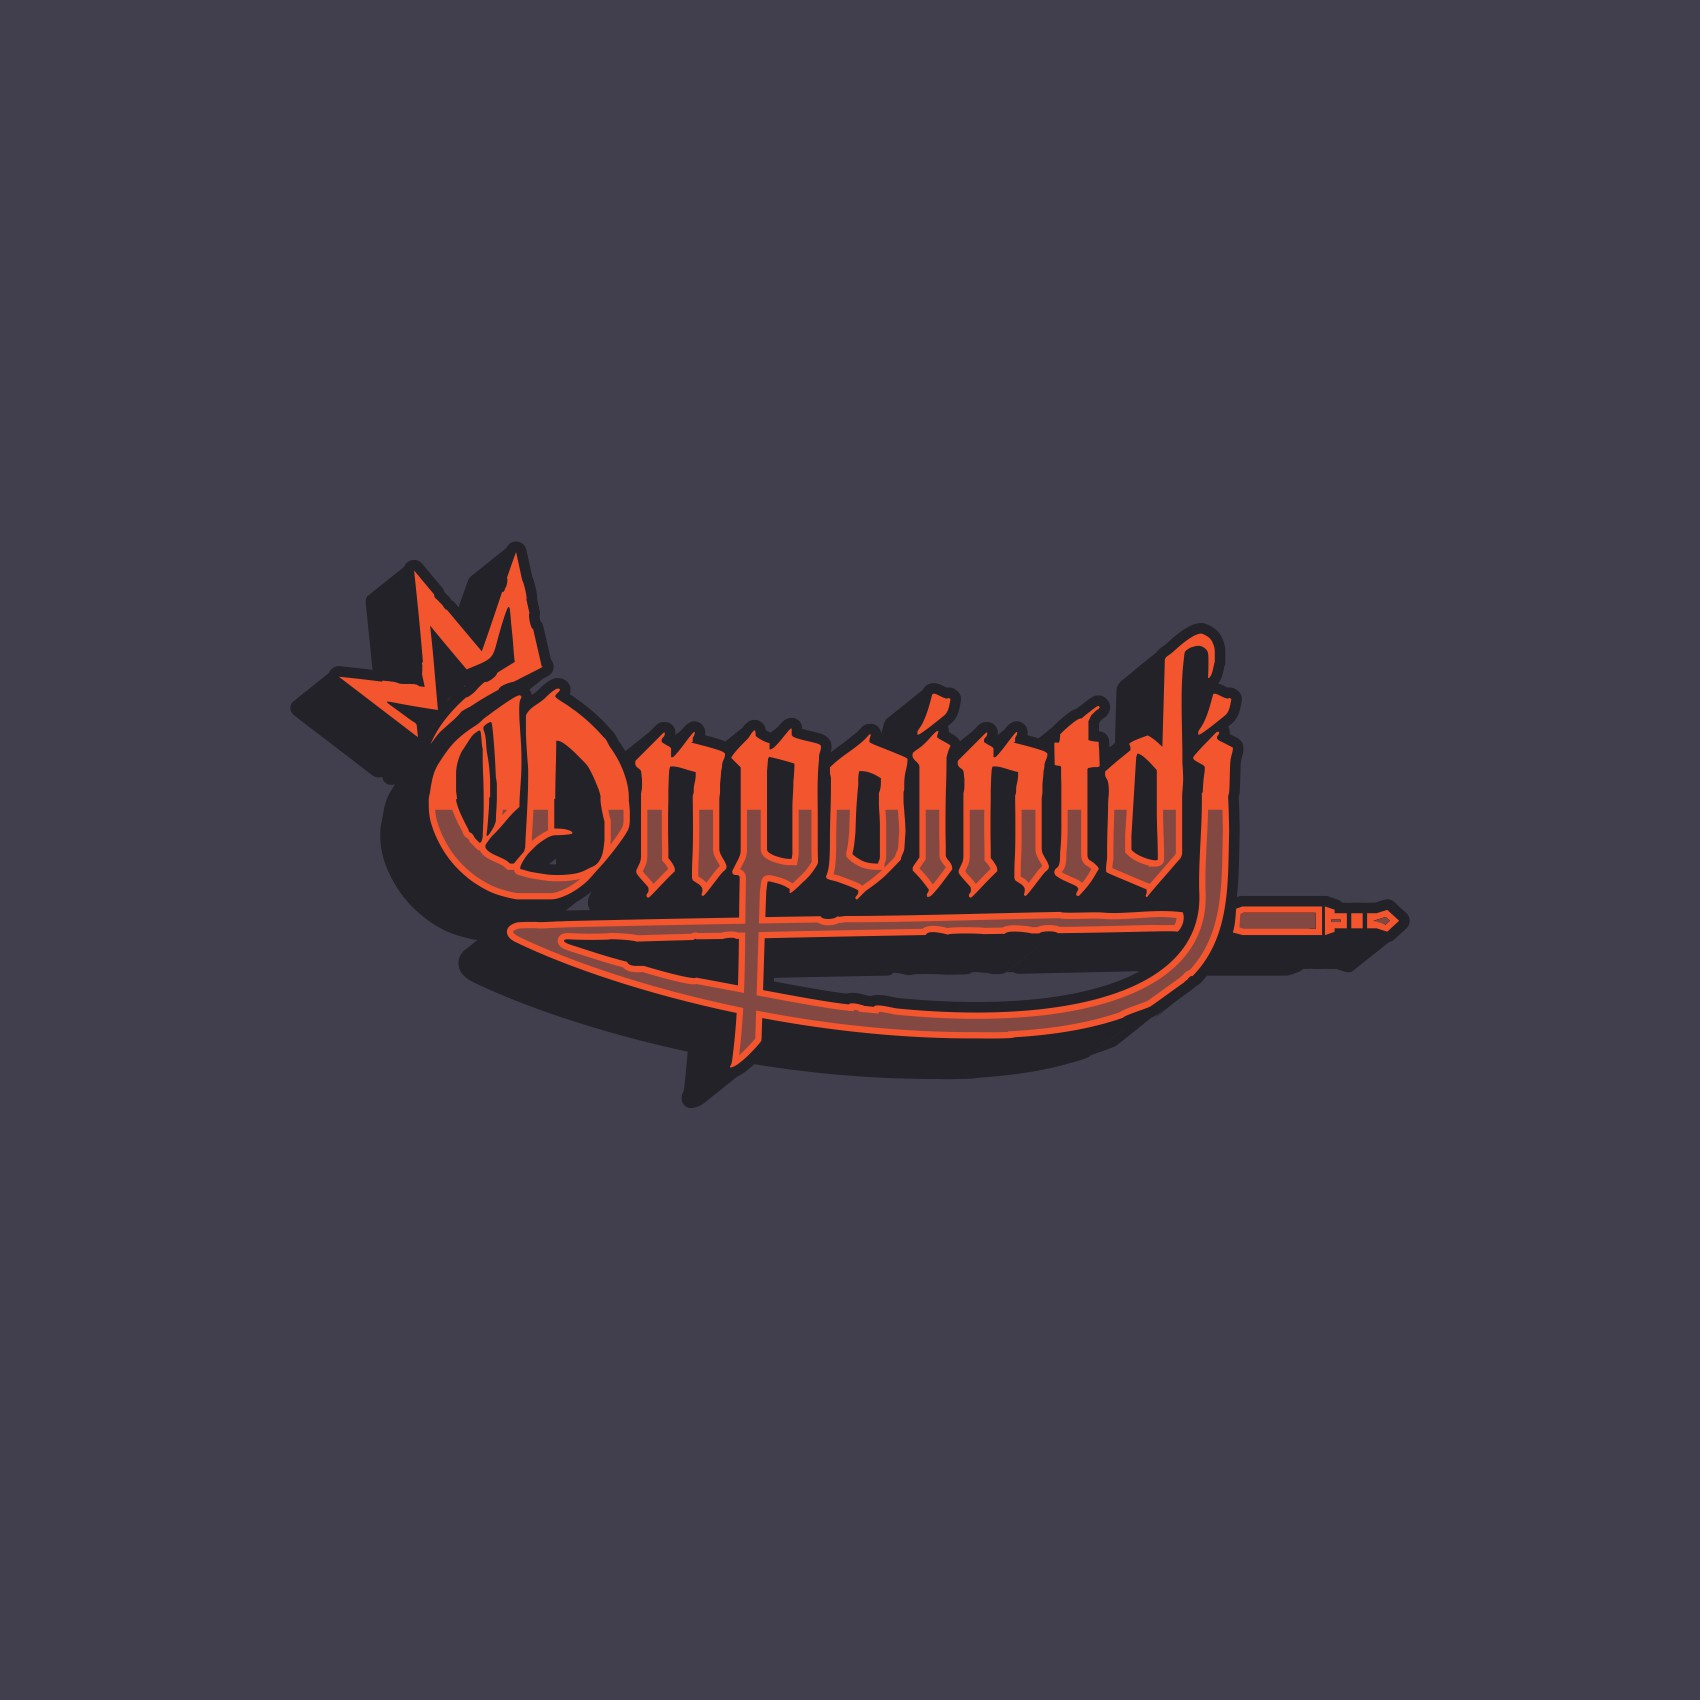 """Edgy, loud, typography logo that has an element of design reads """"ONPOINT""""(no record players) that's youthful & Sophistic"""